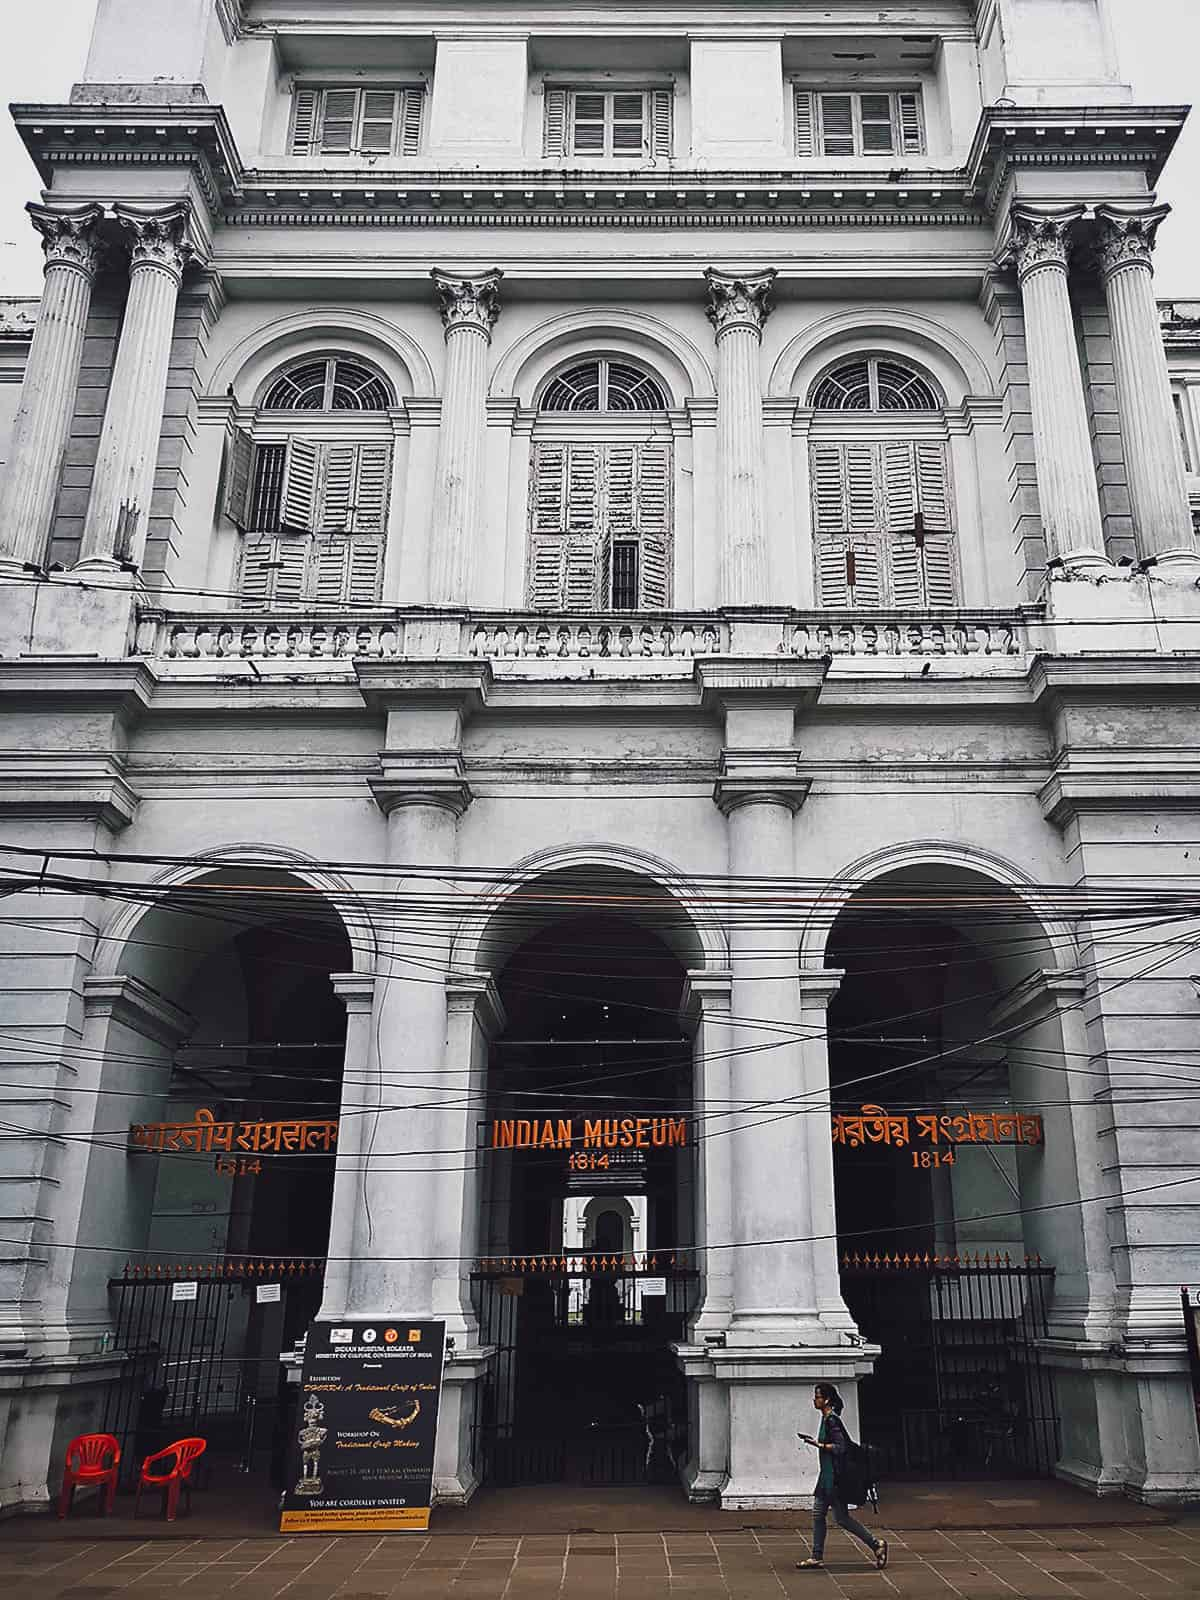 Indian Museum, Kolkata, India